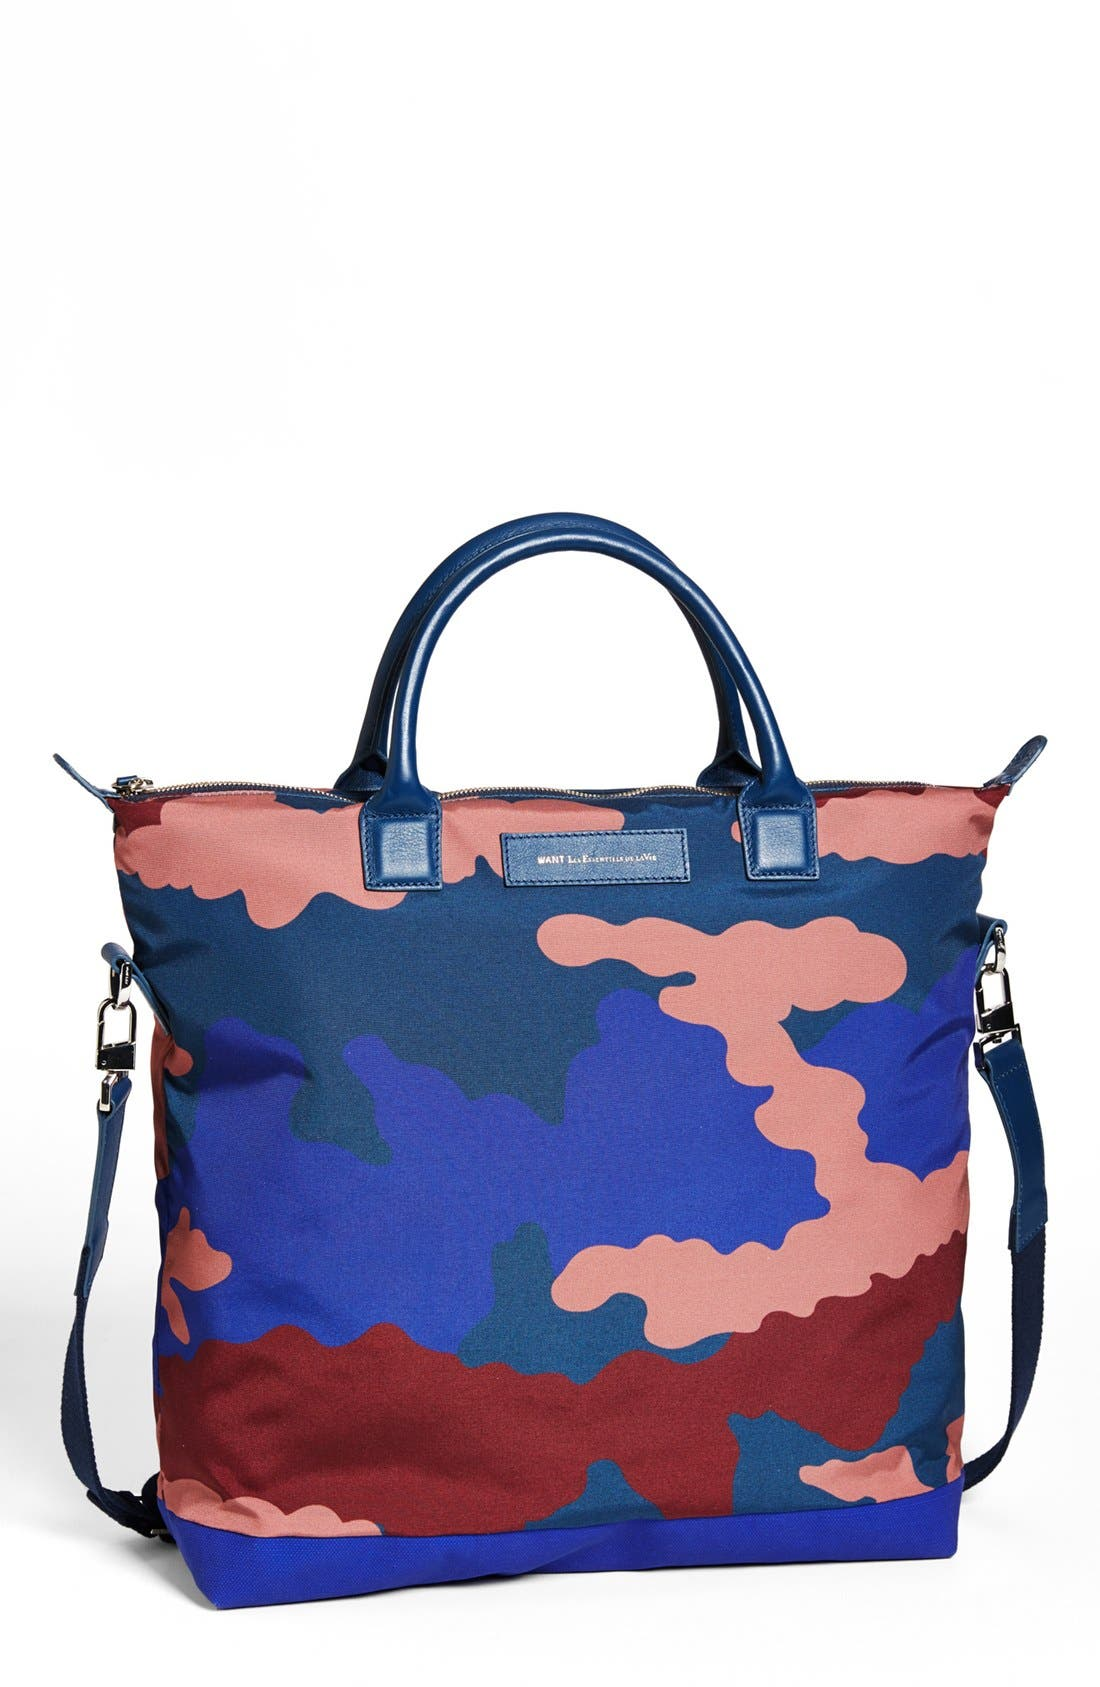 Main Image - WANT Les Essentiels de la Vie 'O'Hare' Tote Bag